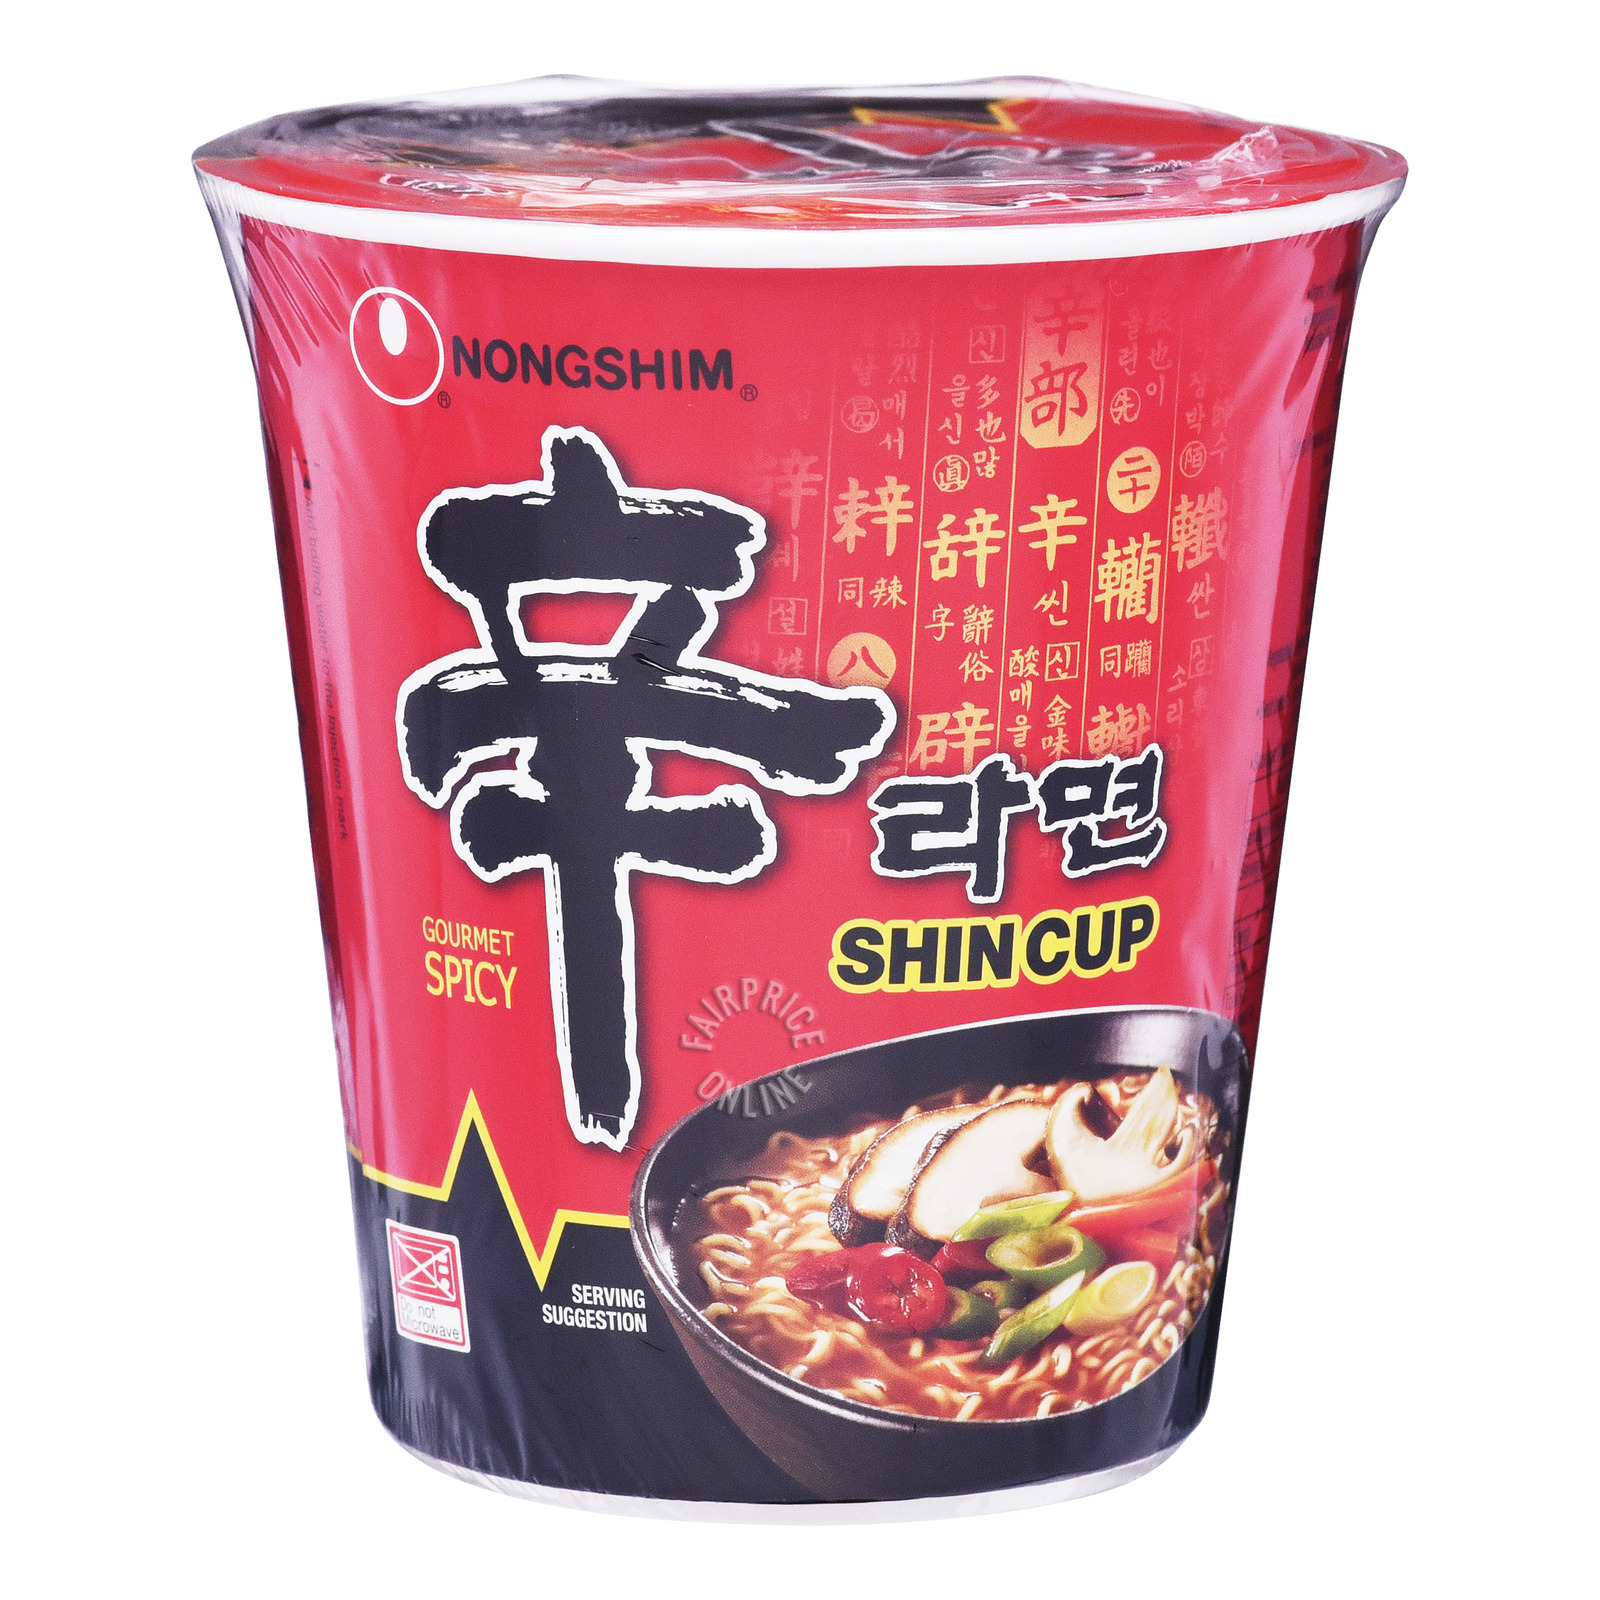 Nongshim Instant Cup Noodle - Spicy